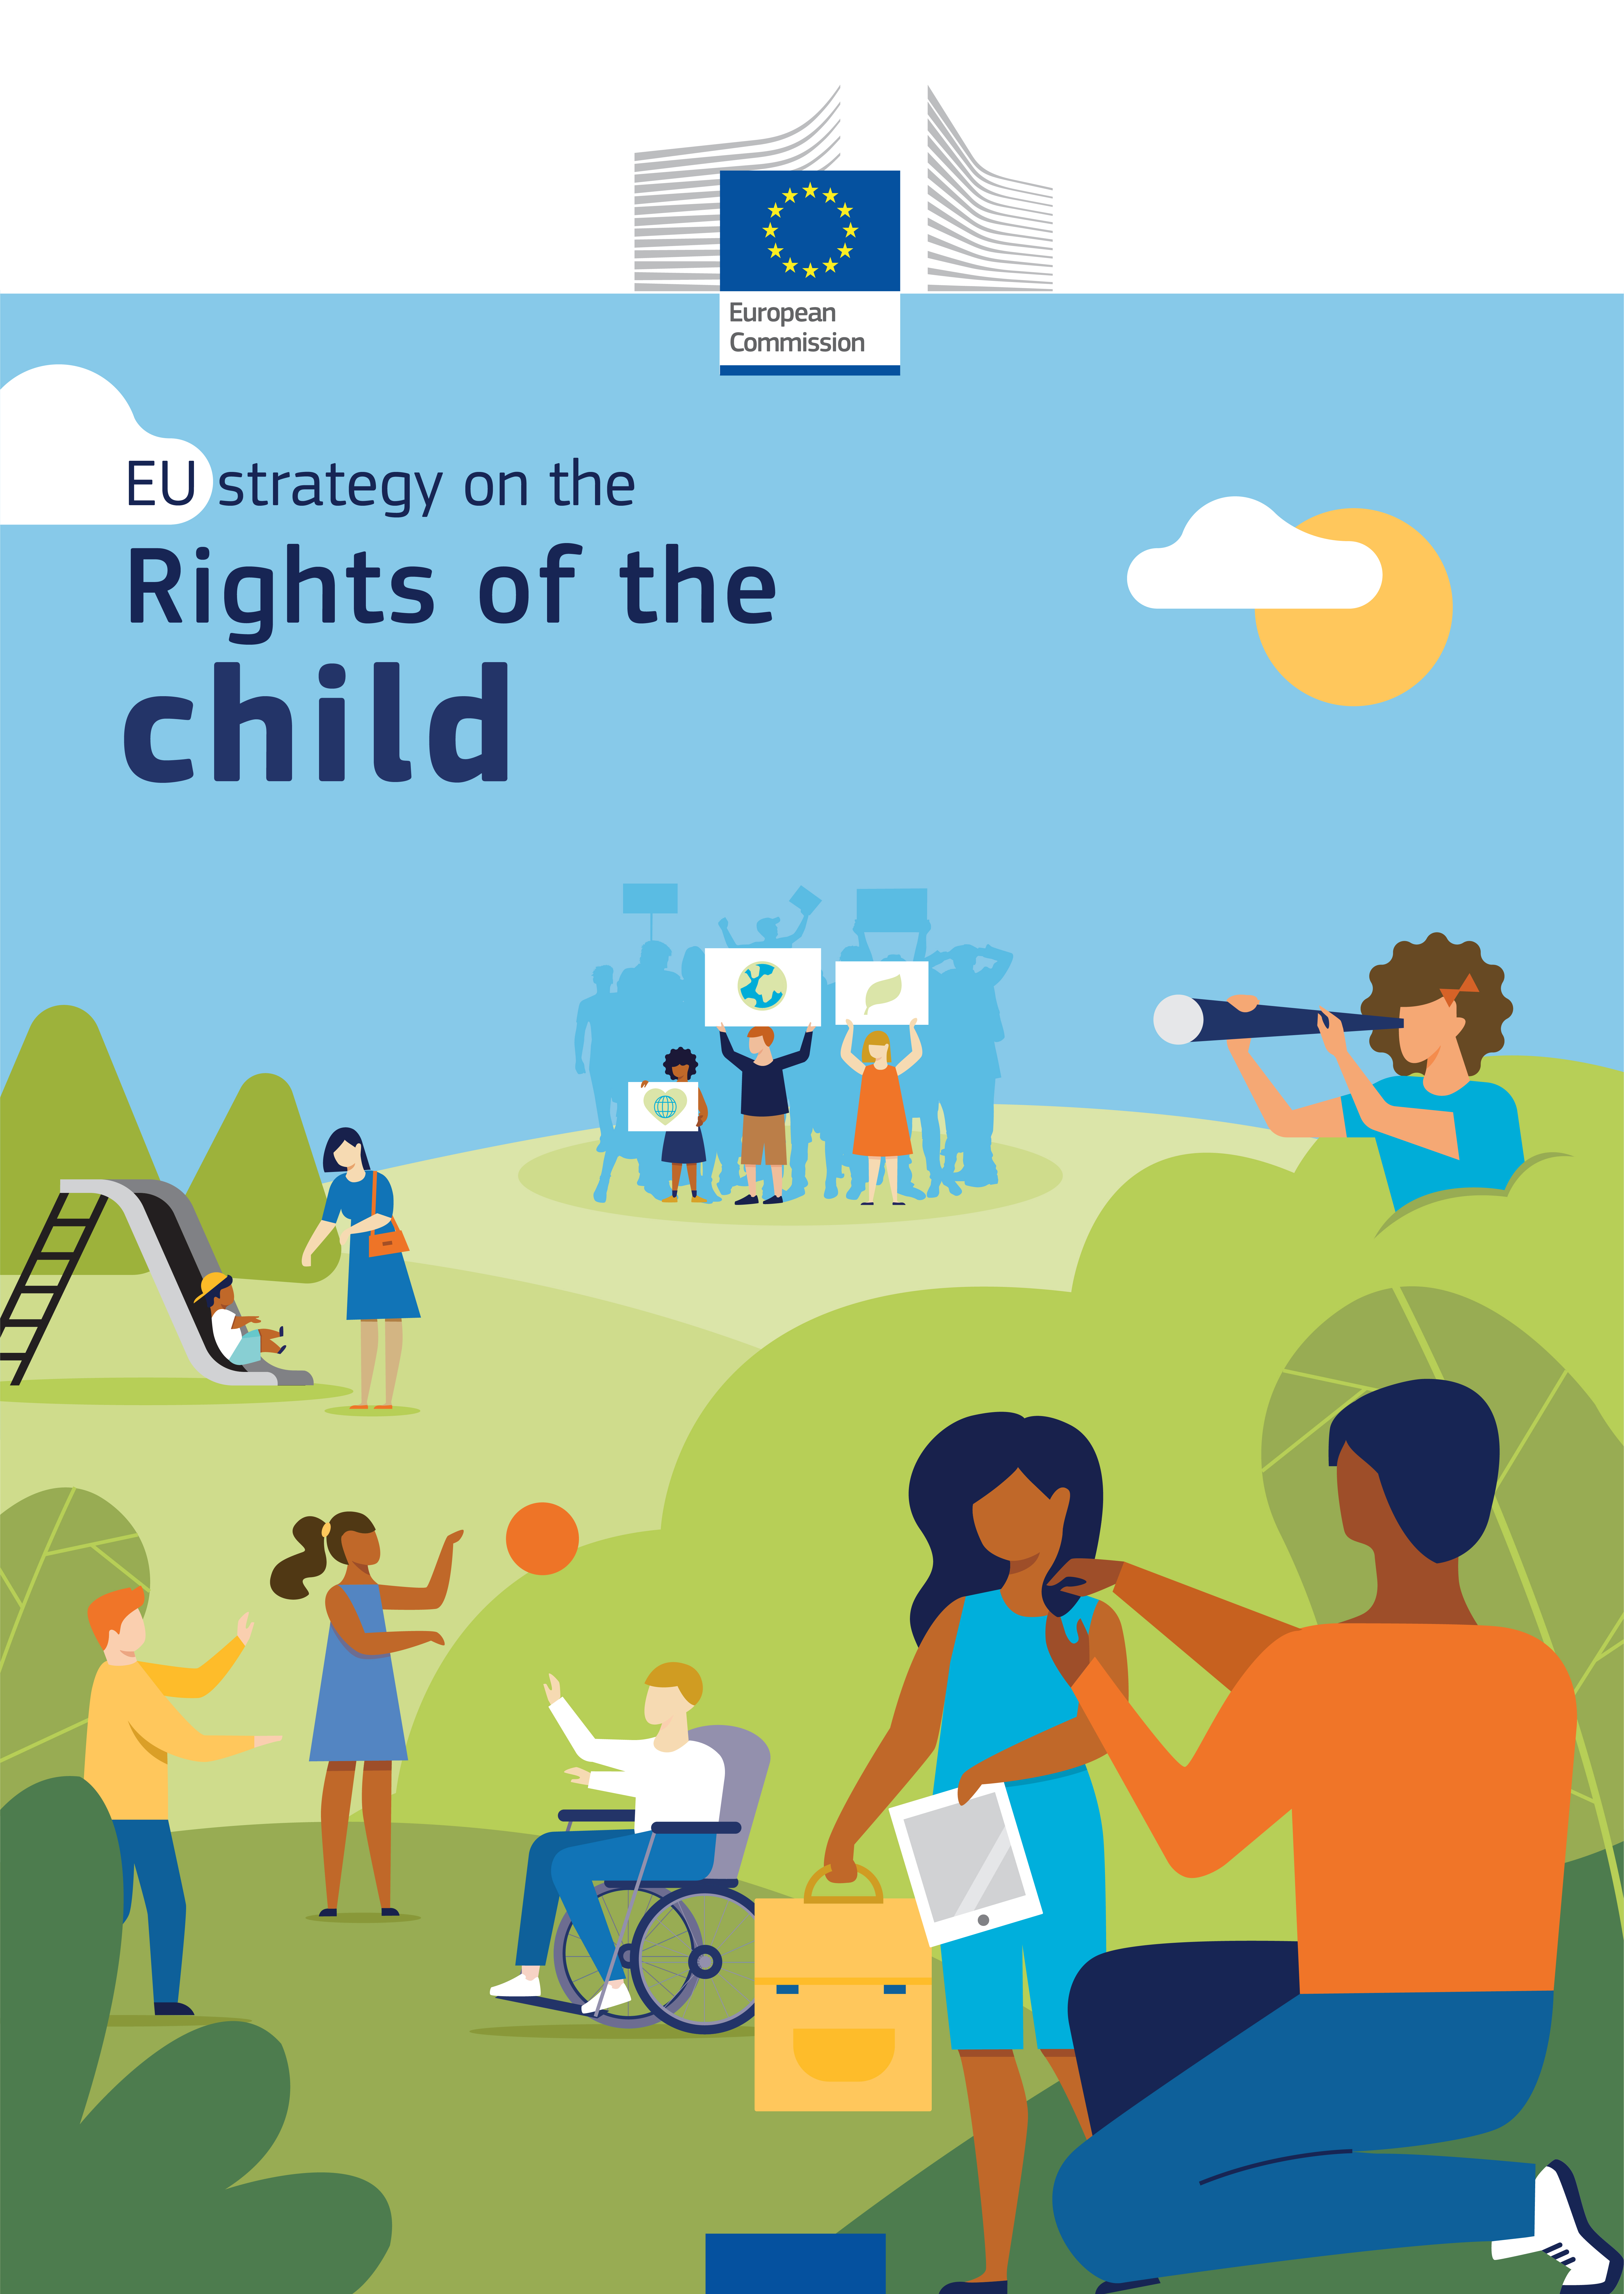 The EU strategy on the rights of the child